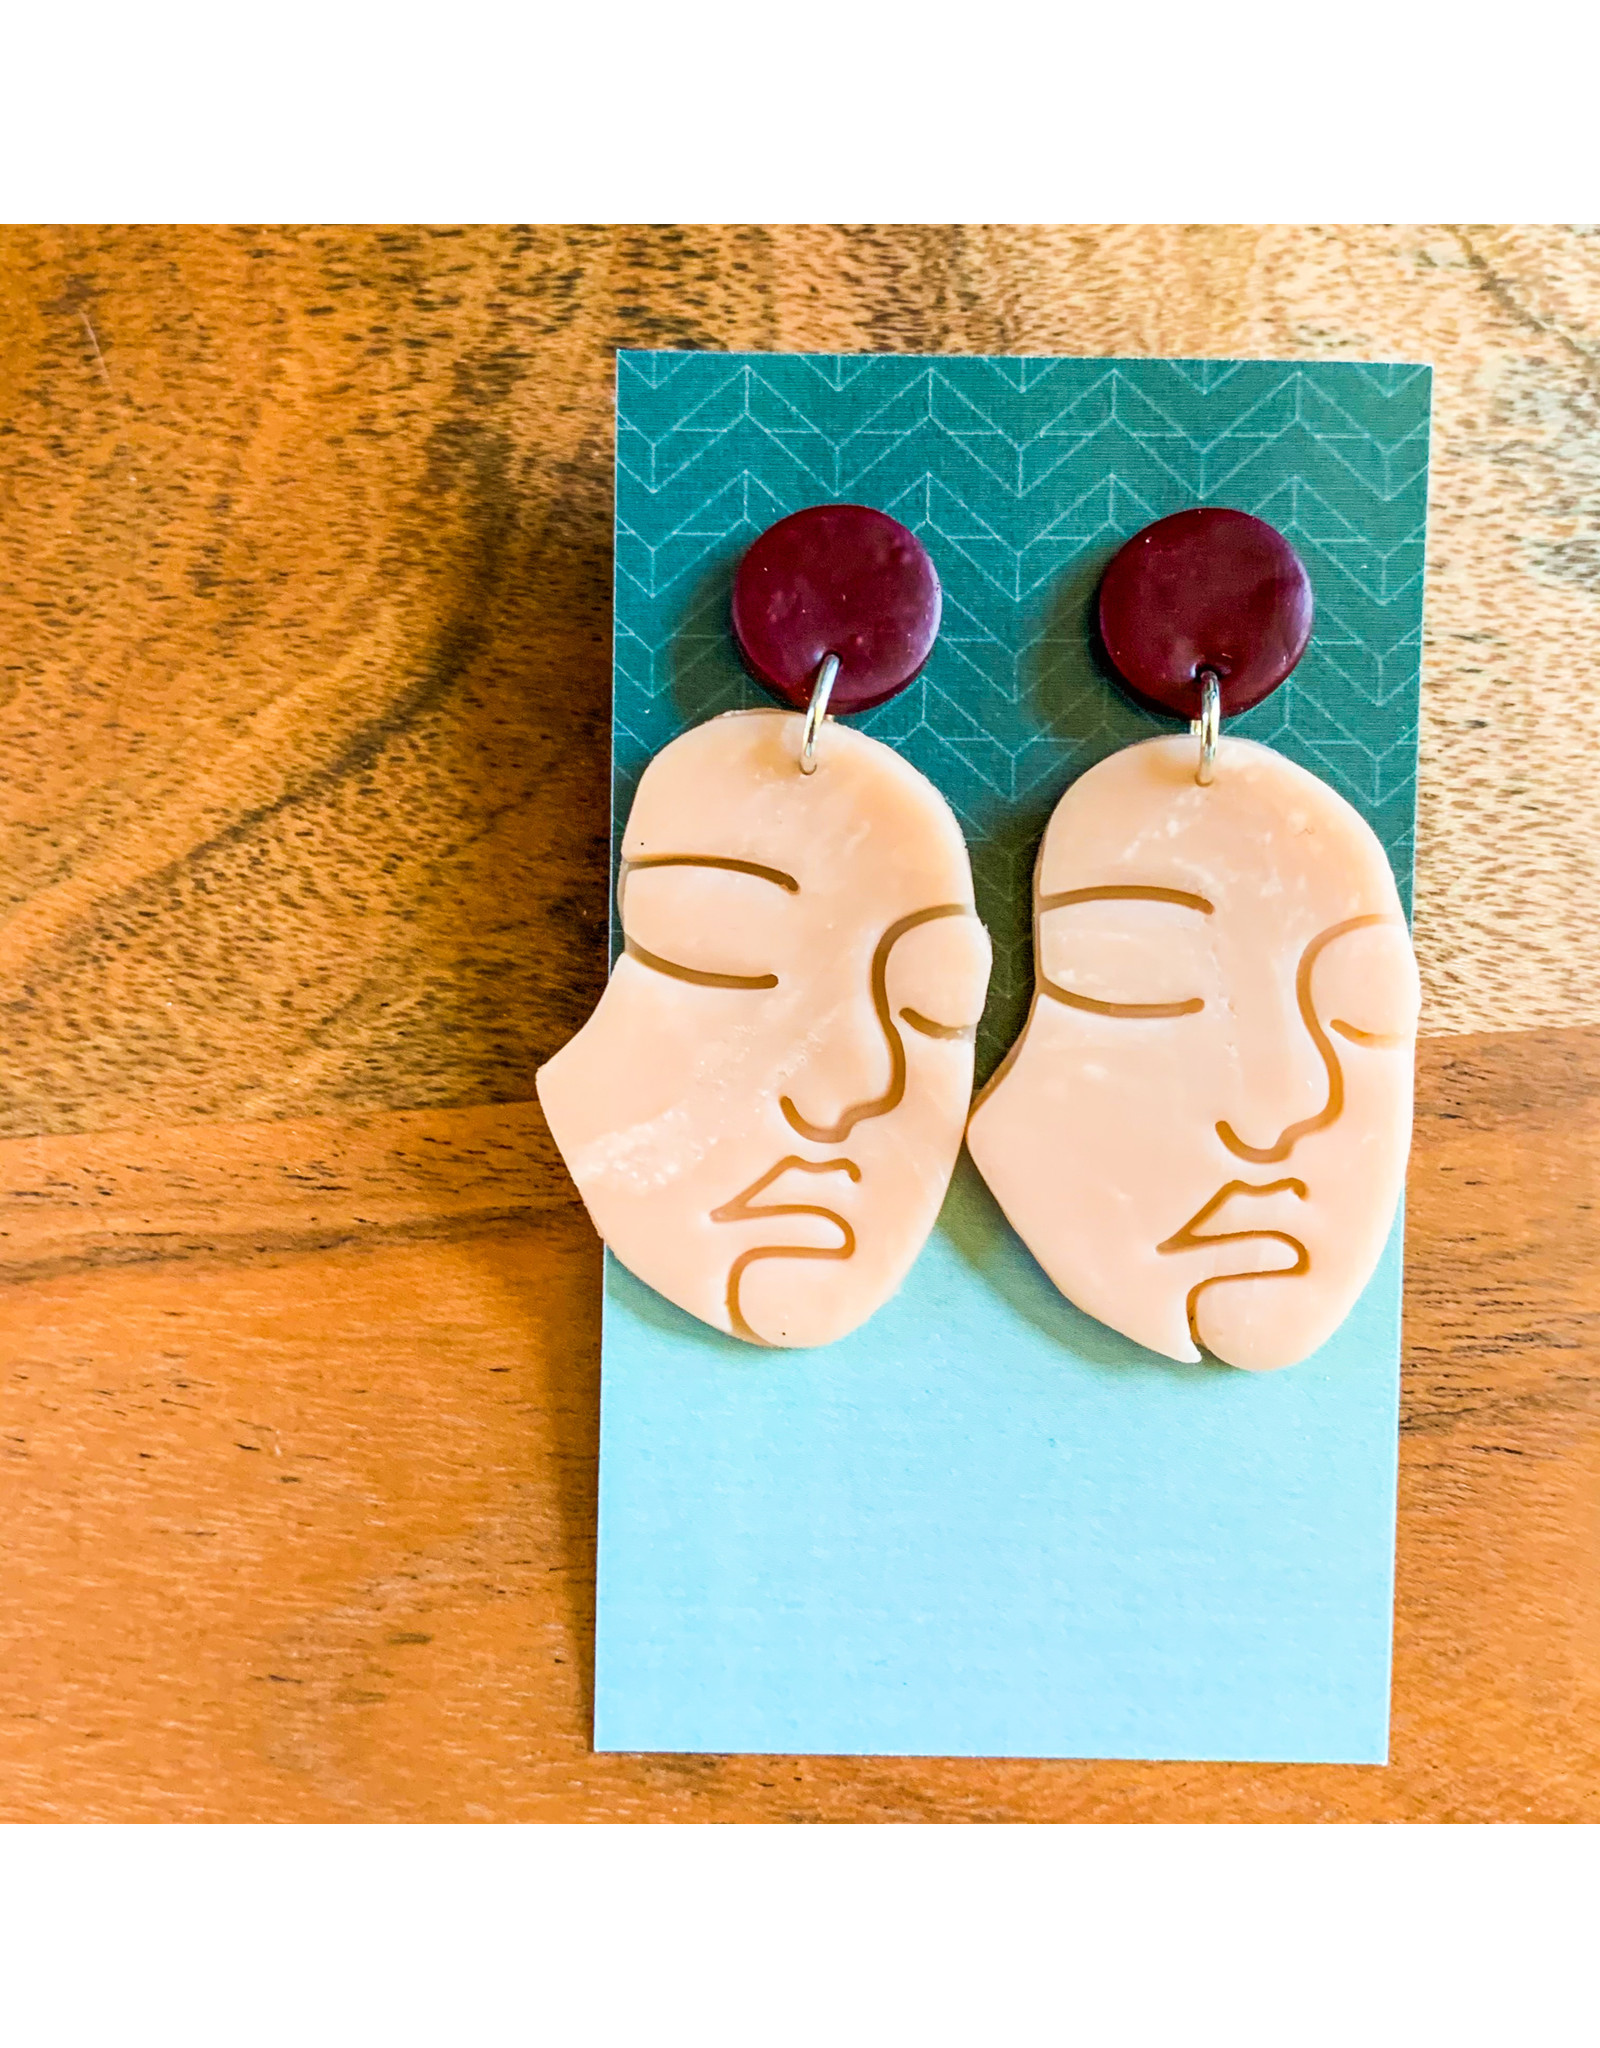 Maria Anholzer-Consignment Pink and Maroon Faces Consignment